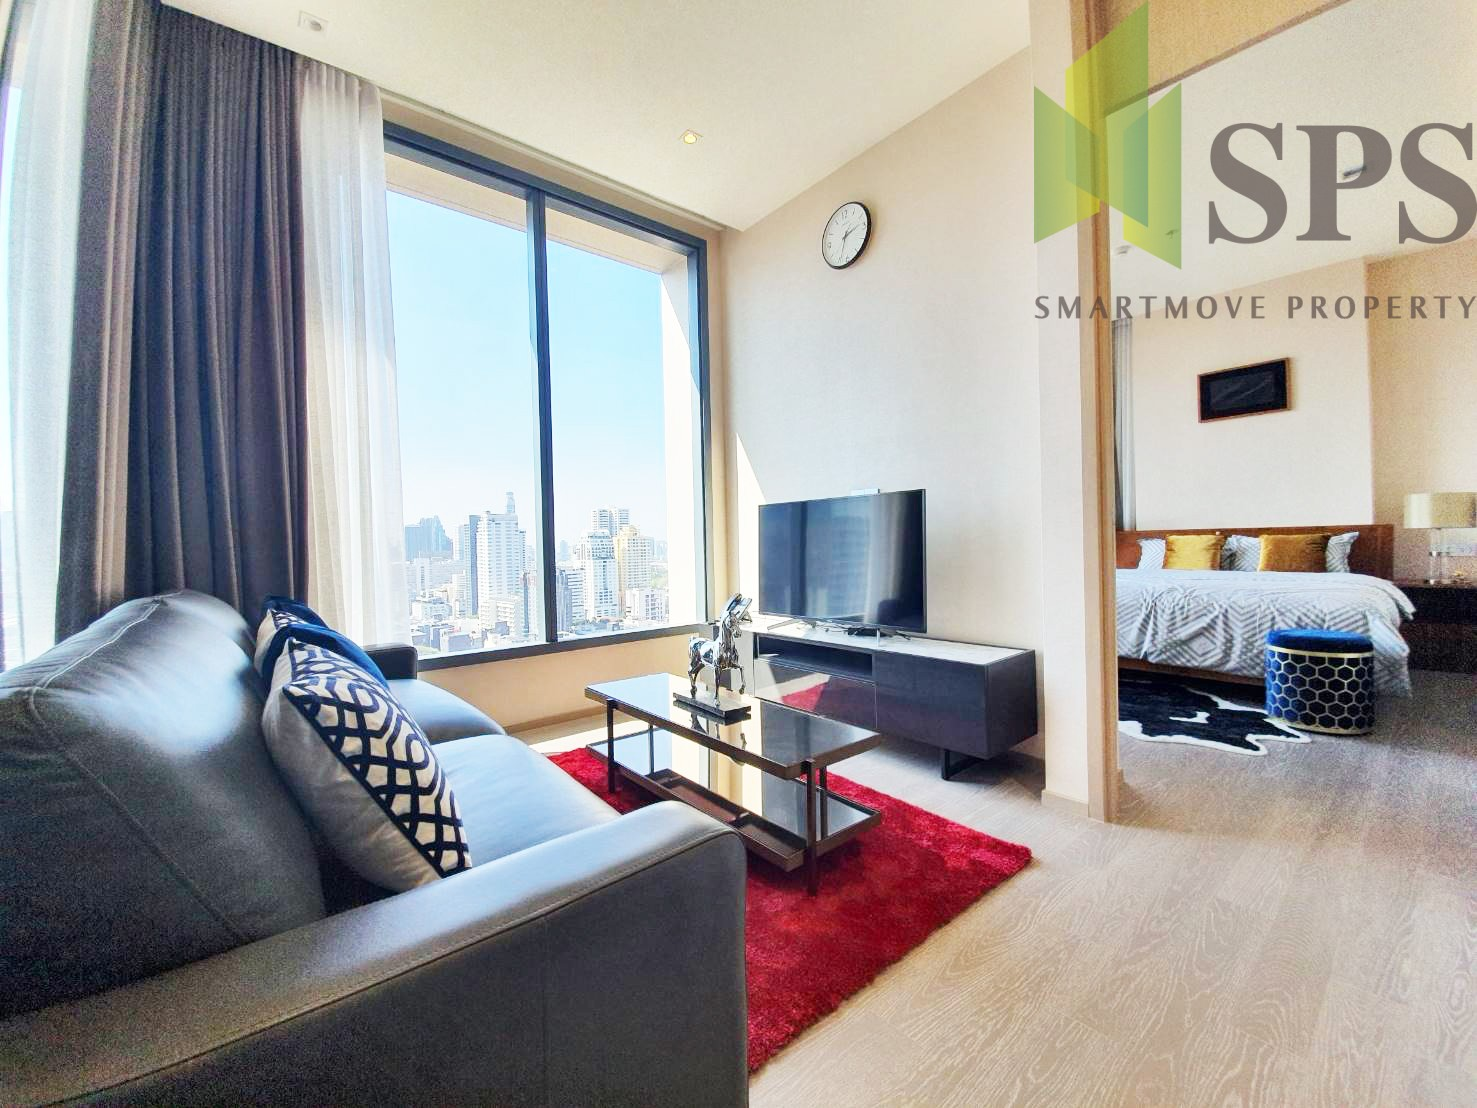 The ESSE Asoke for RENT ( SPSP188)